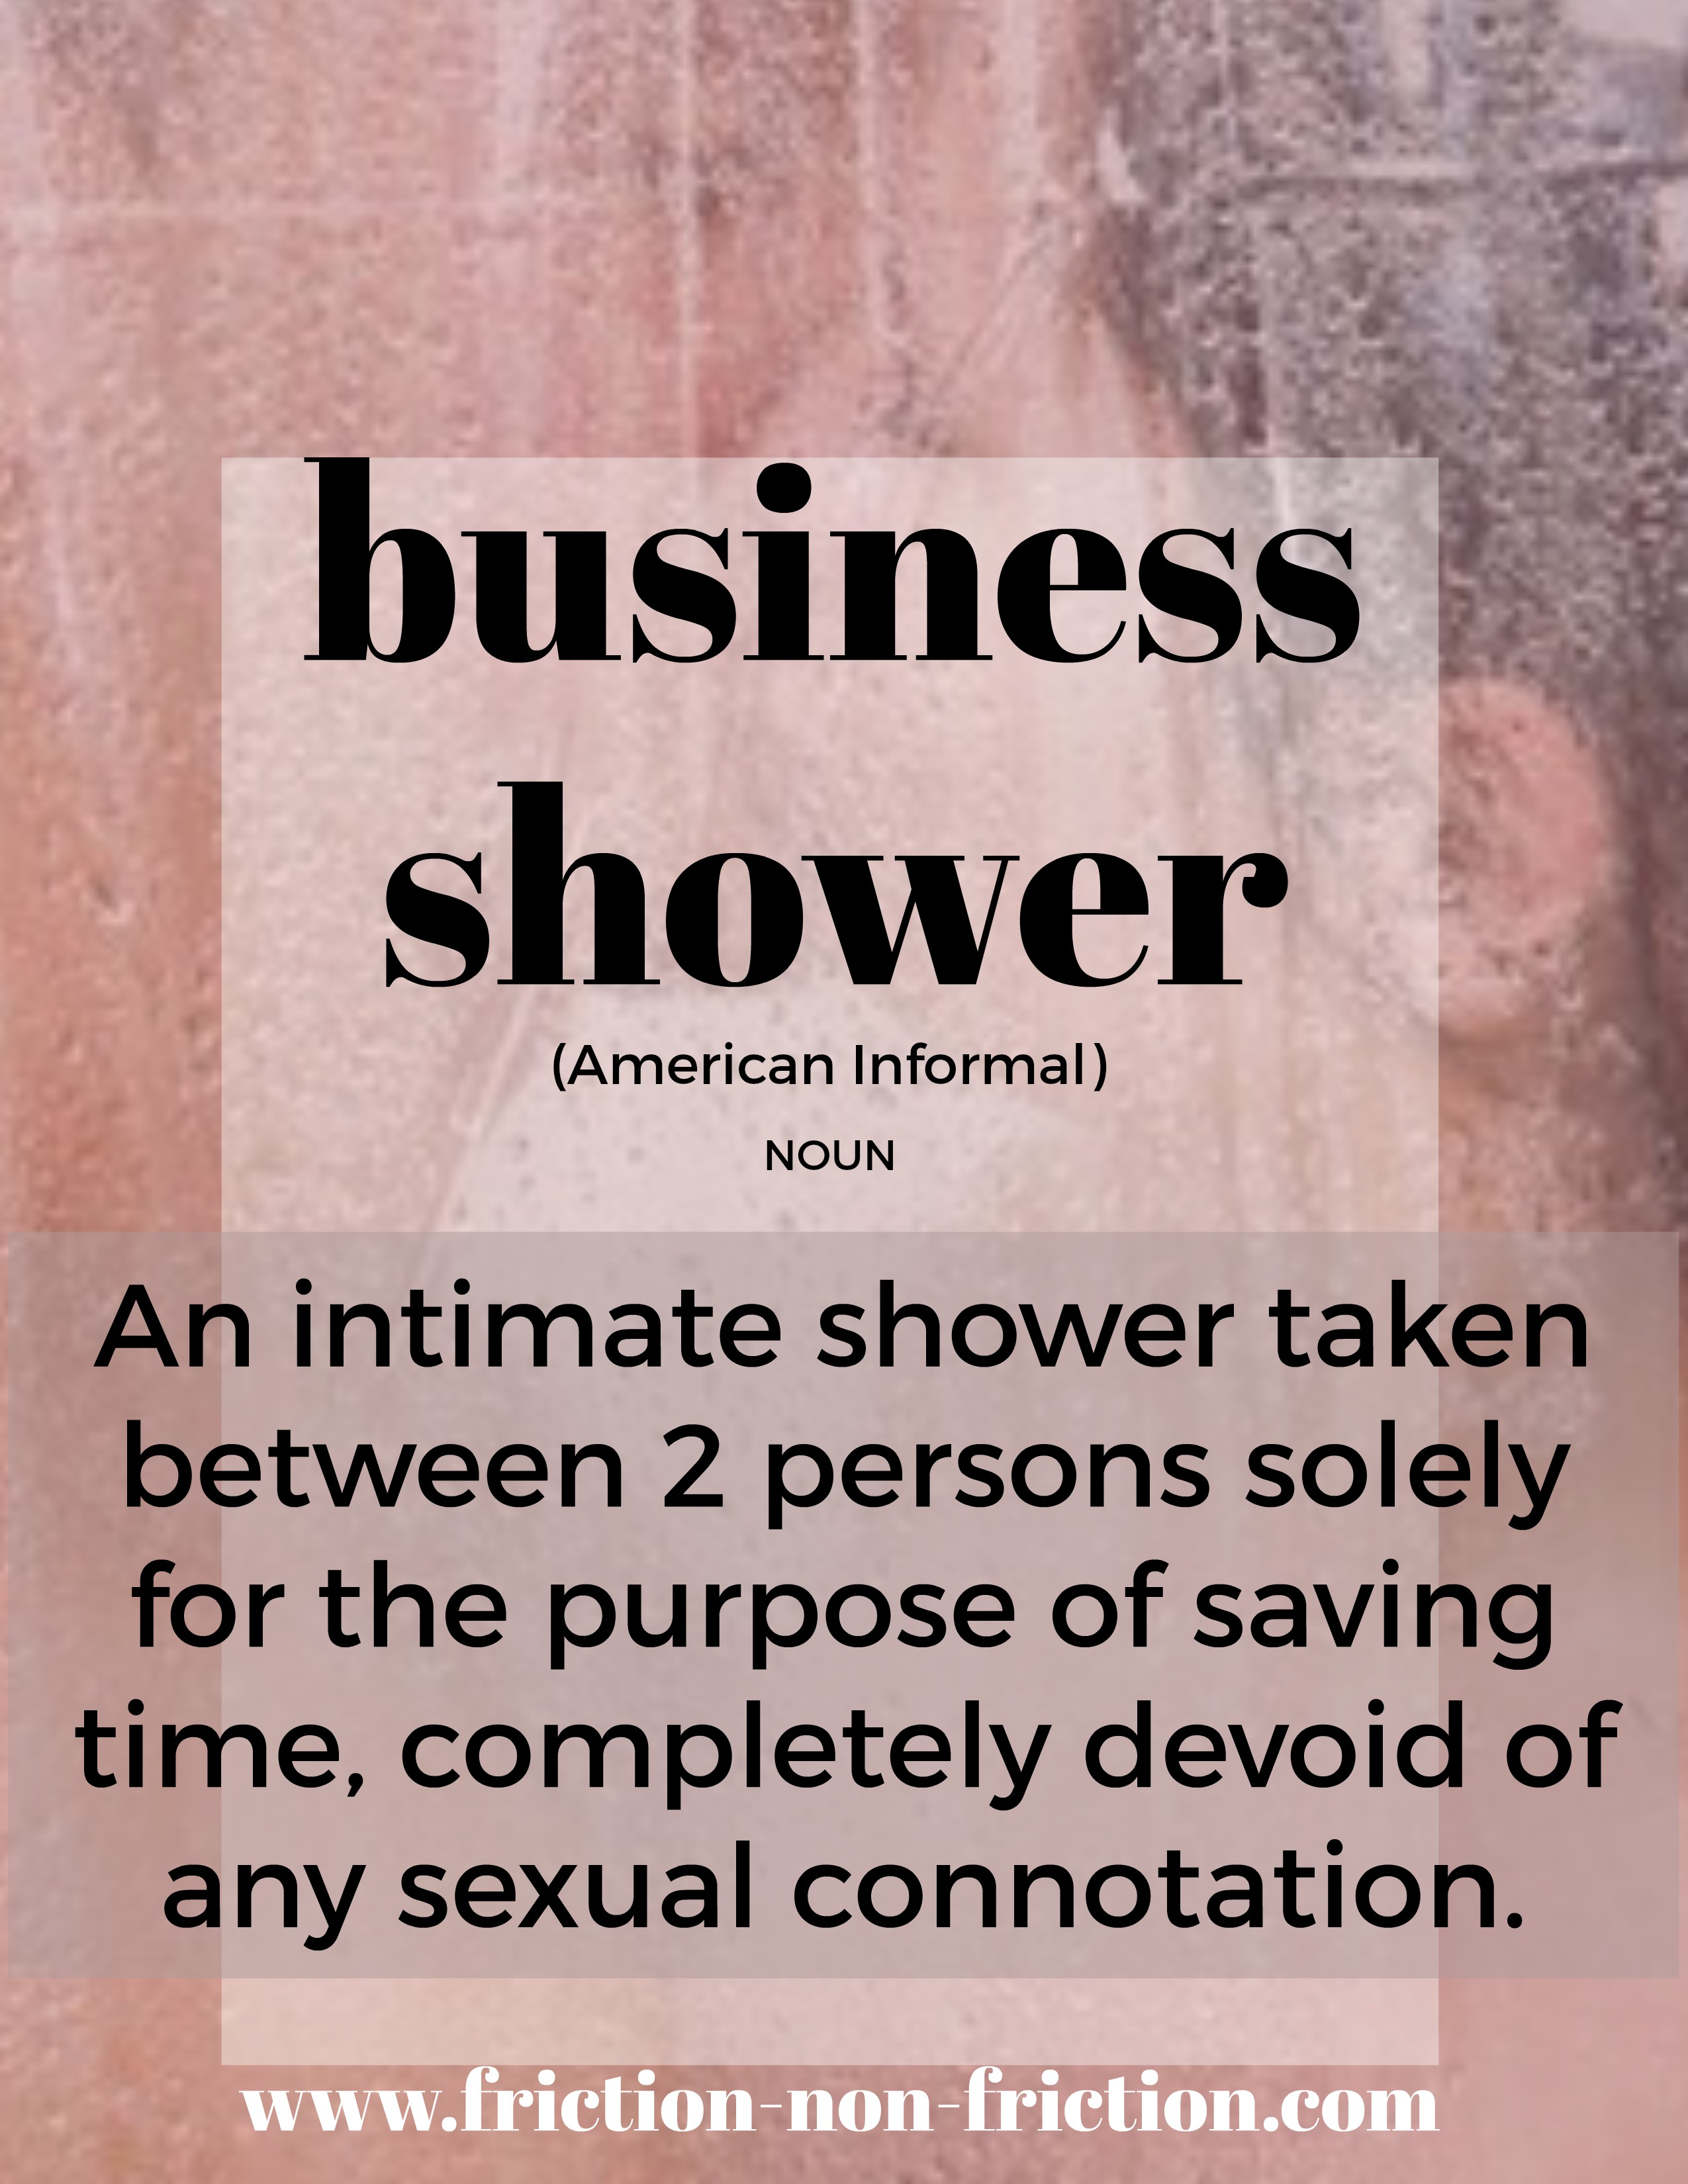 Business Shower -- another great FRICTIONARY definition from Friction non Friction